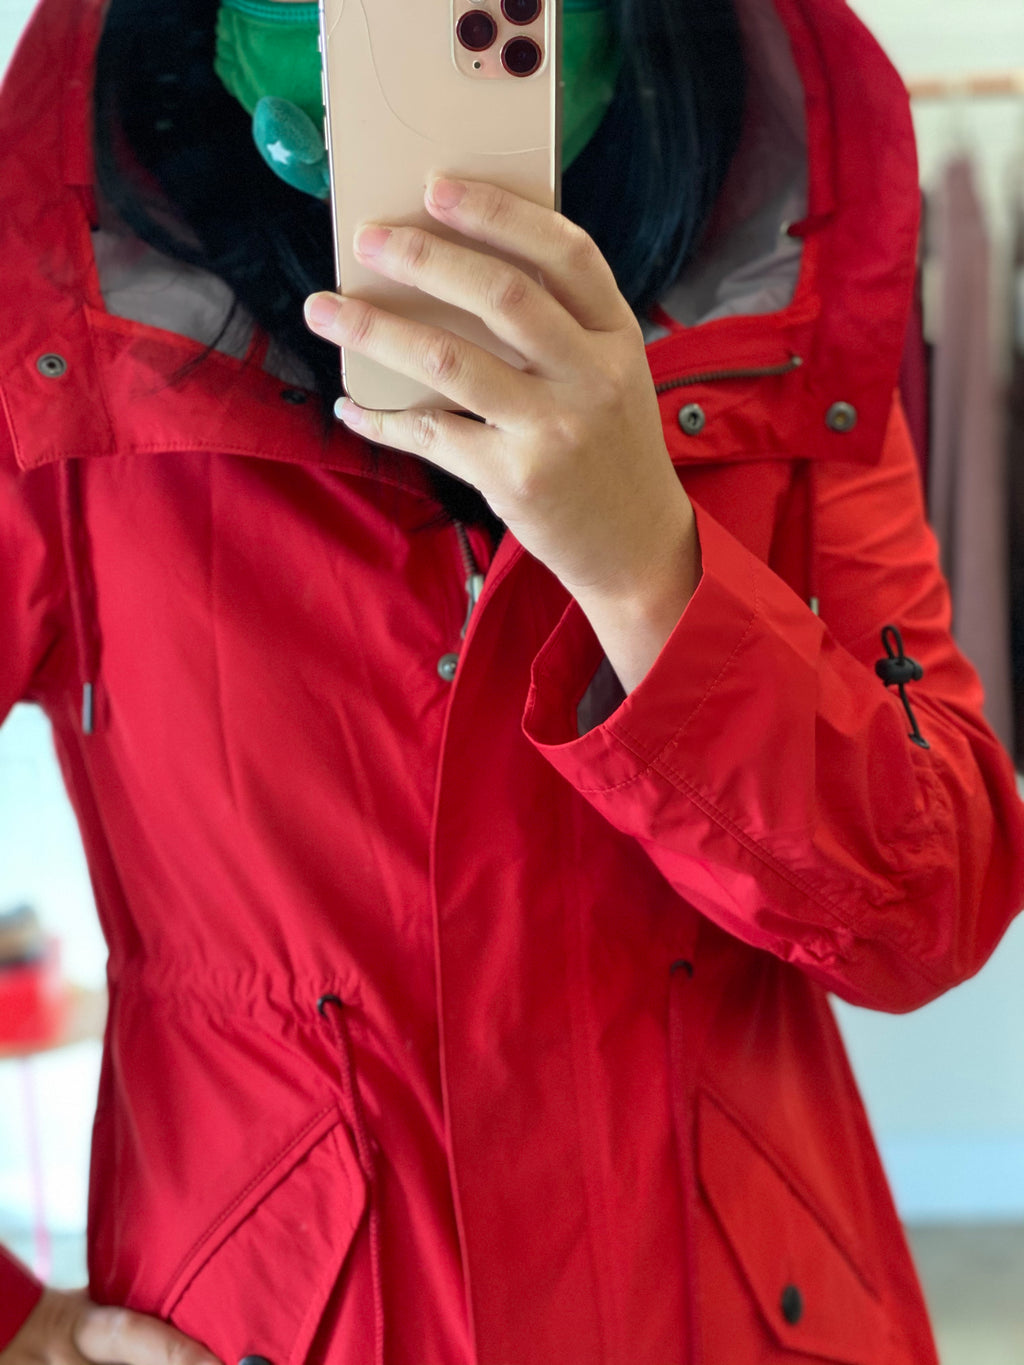 ZHUI 8916 RAINCOAT (100% TERYLENE OUTSIDE, MICROFIBER LINING, WATER PROOF)